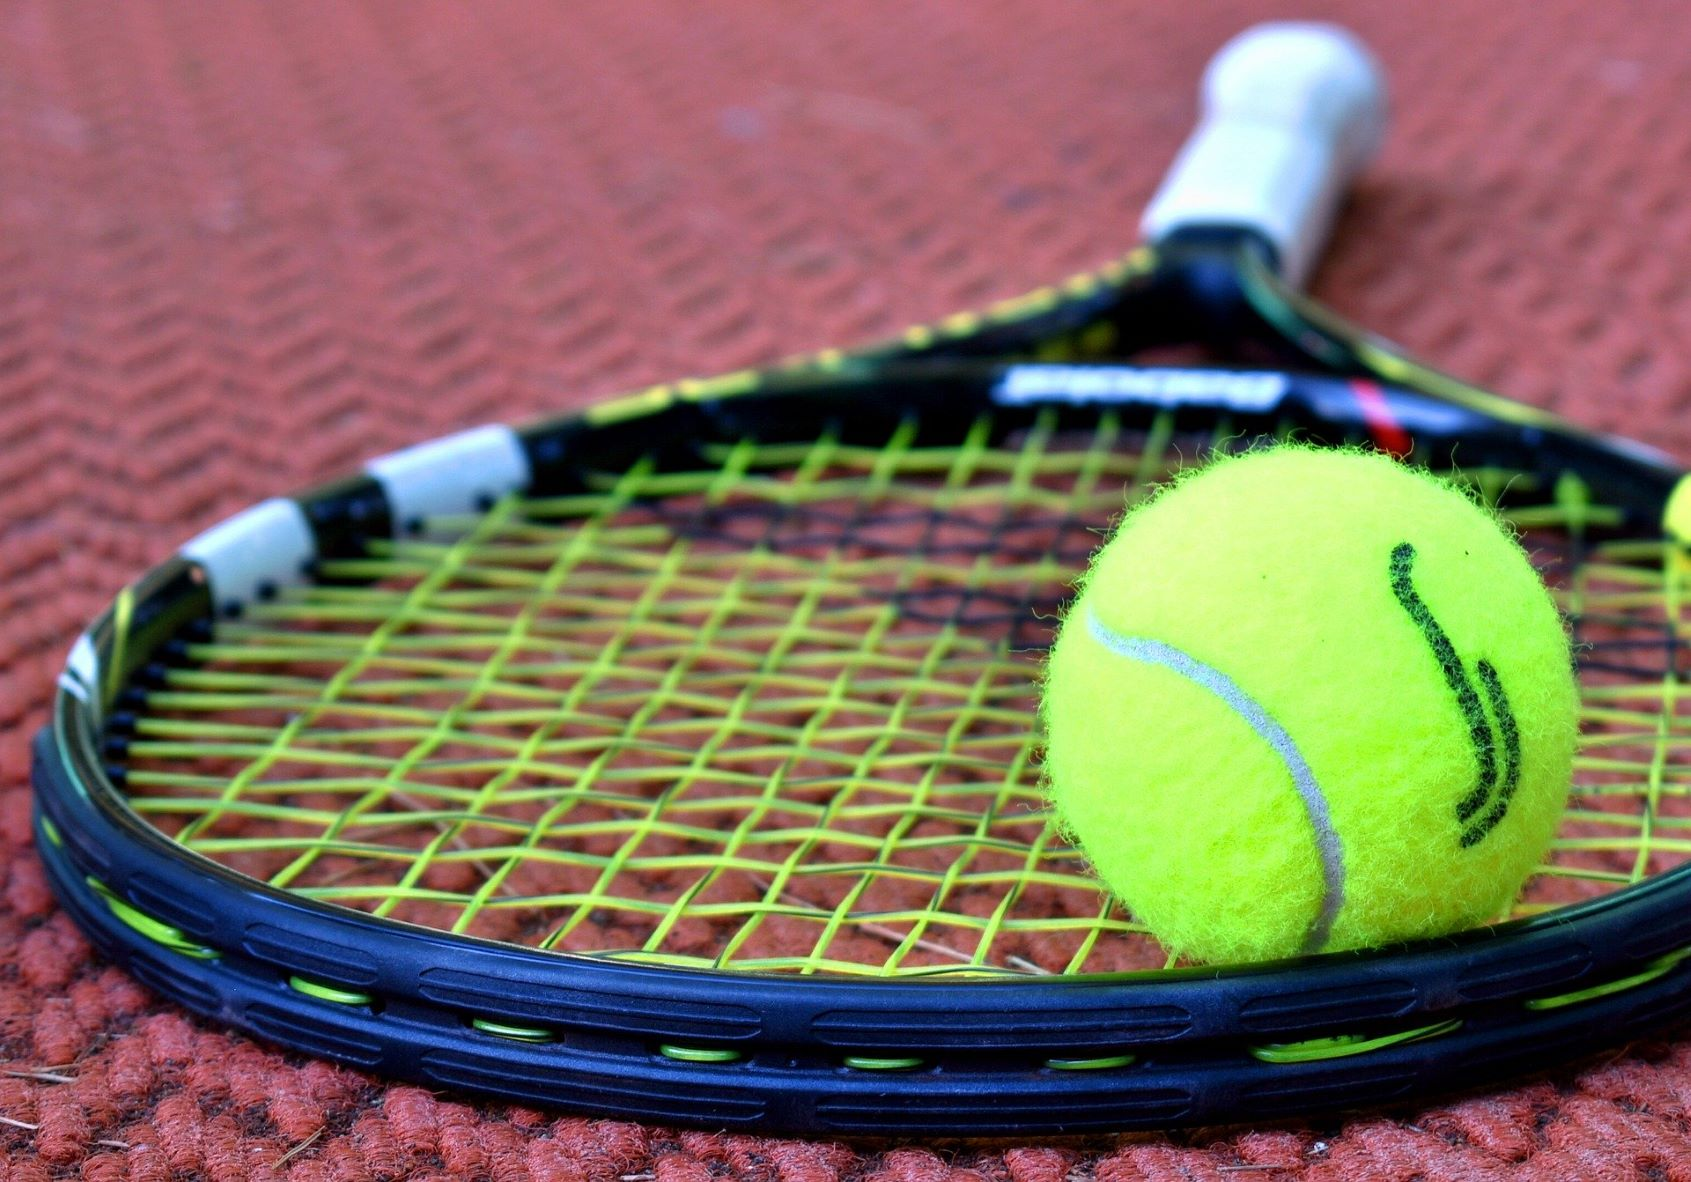 sporting goods tennis racket